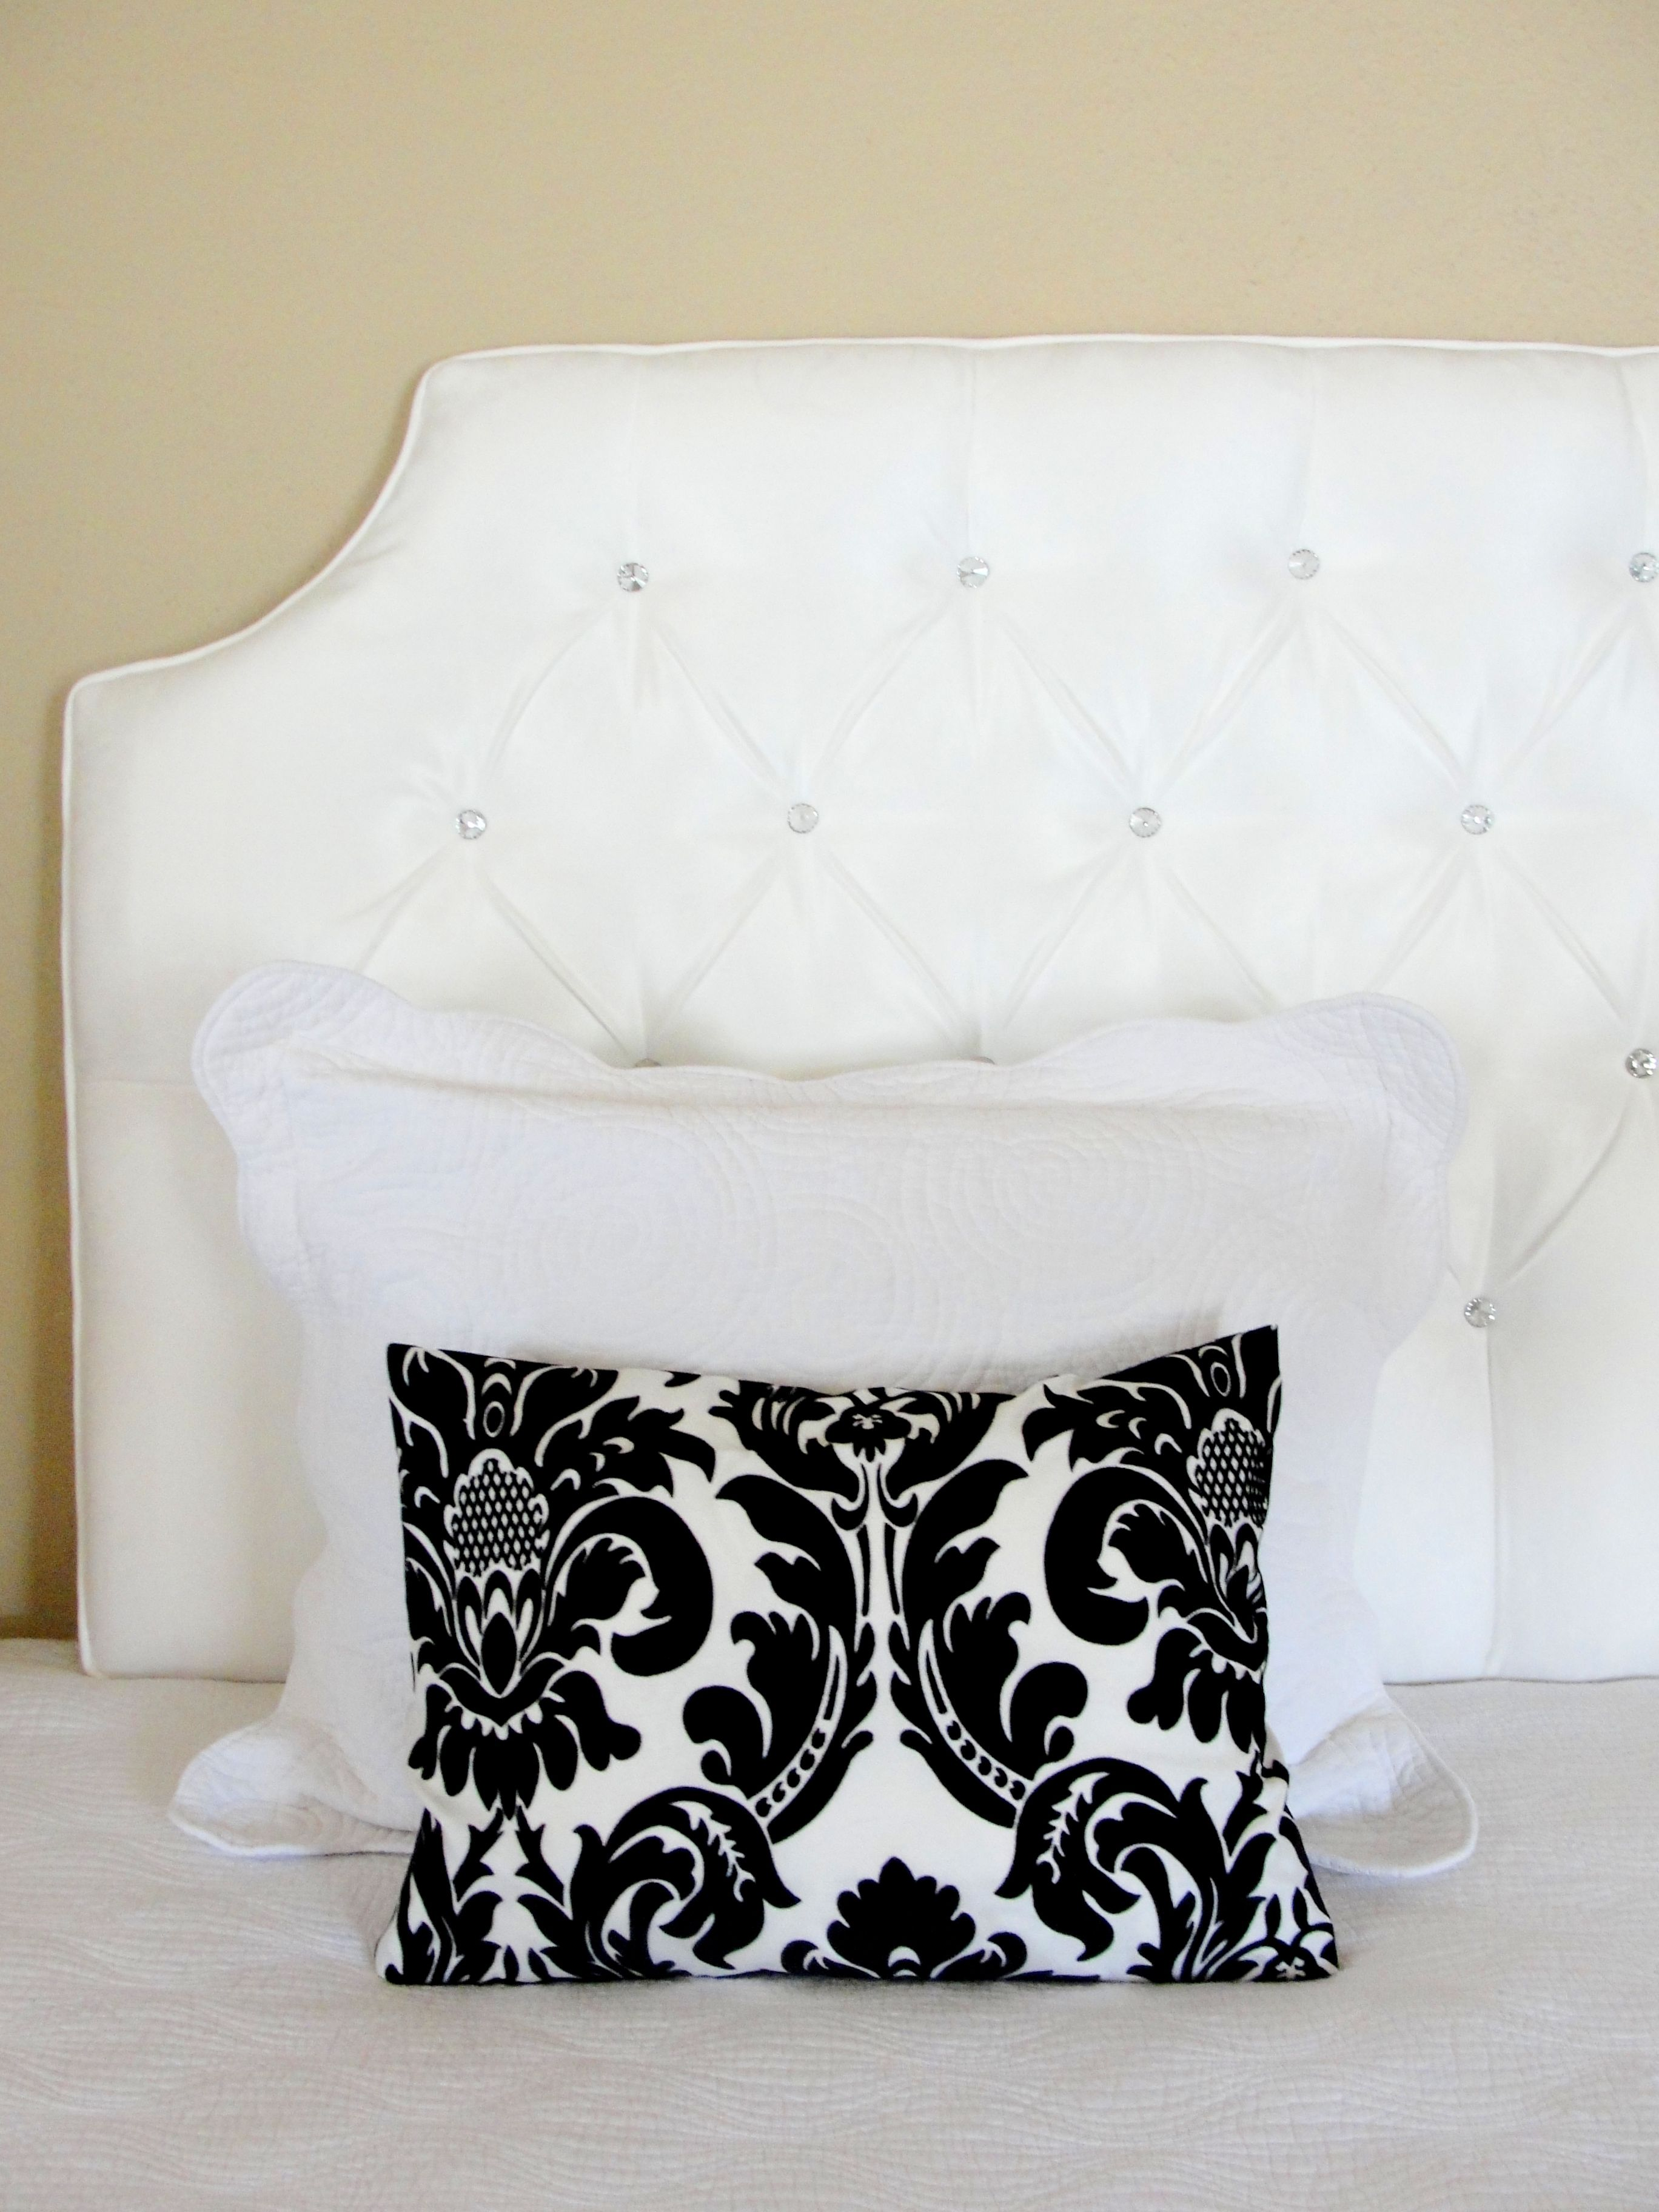 Custom Tufted Upholstered Headboard    Made to order    wall mounted     White tufted headboard crystal glass rhinestone buttons